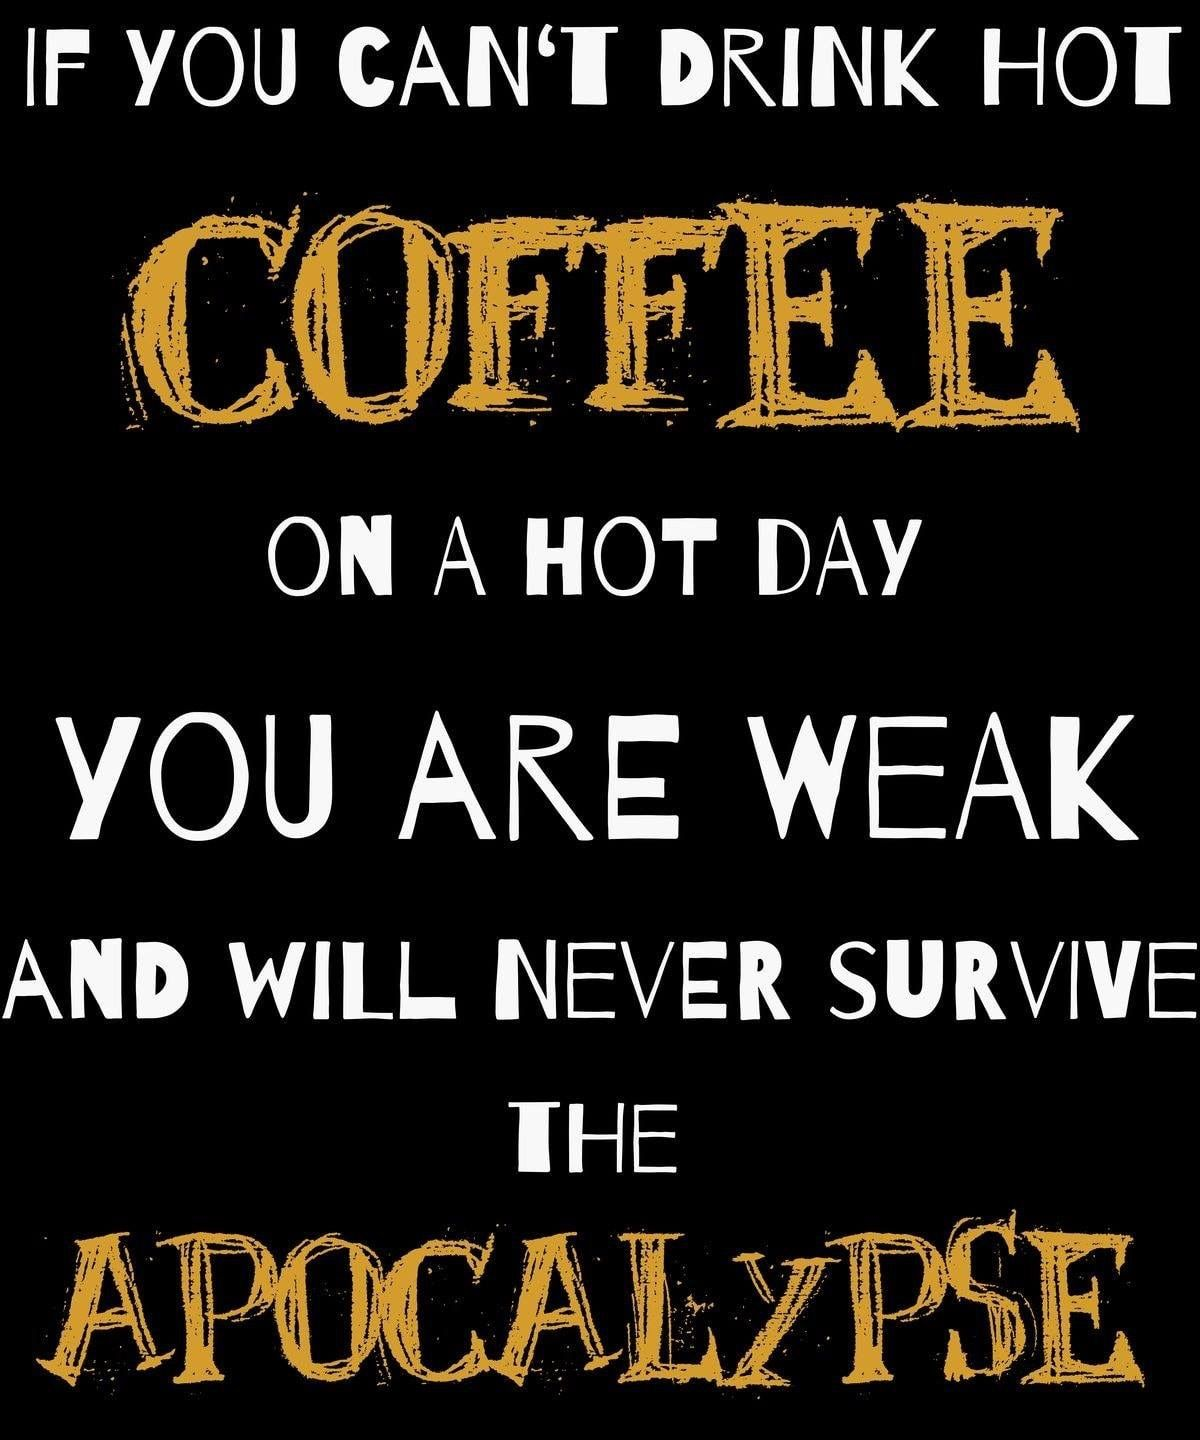 Pin by Lisa Kozero on Coffee and wine... Oh so devine